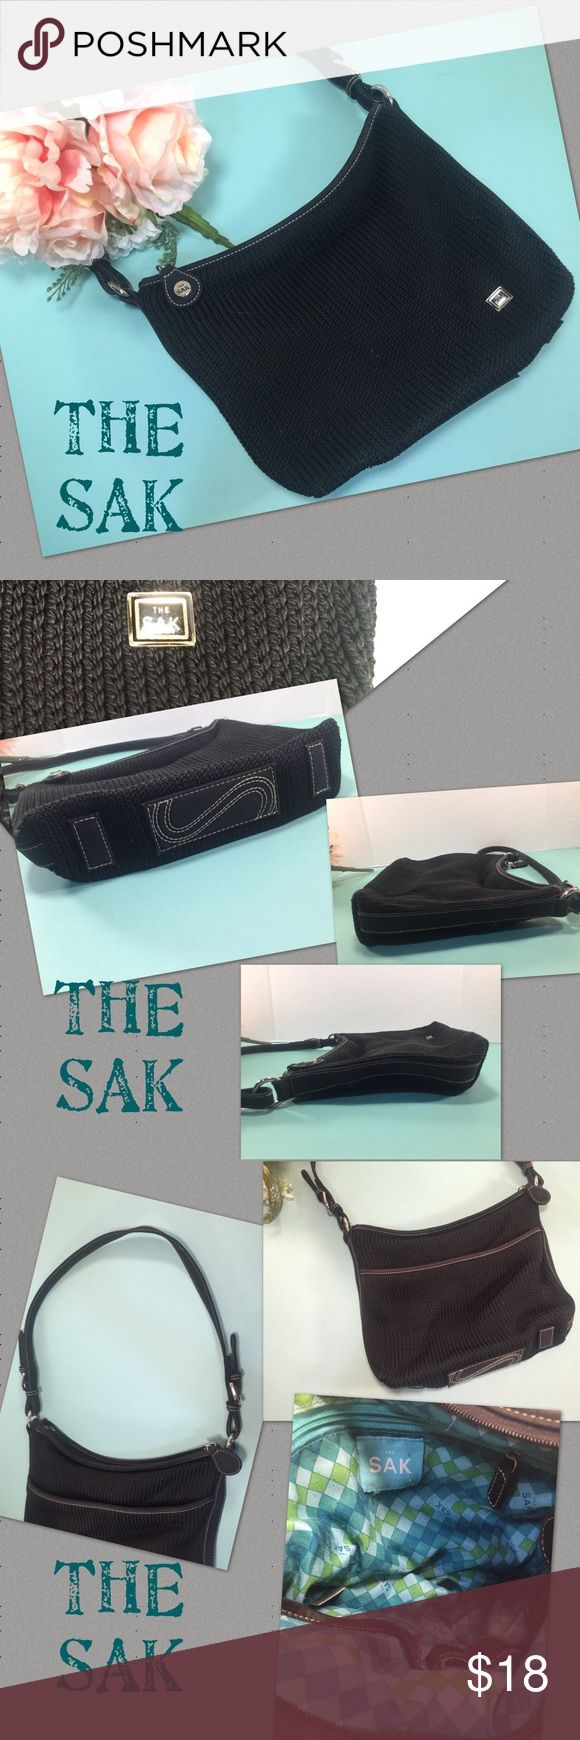 THE SAK Black Woven Bag THE SAK Black Woven Bag has silver tone hardware, contrast stitching, large exterior slip pocket, overall top zip closure, signature base, and adorable blue and green harlequin interior lining. One interior zip pocket, two slip pockets, & a few additional storage spots. Exterior looks nice, and interior shows moderate to heavy wear due to prior usage. Nothing major, but definitely signs of use! Super adorable bag & can be used anytime of year. Orig. $58.50 The Sak…